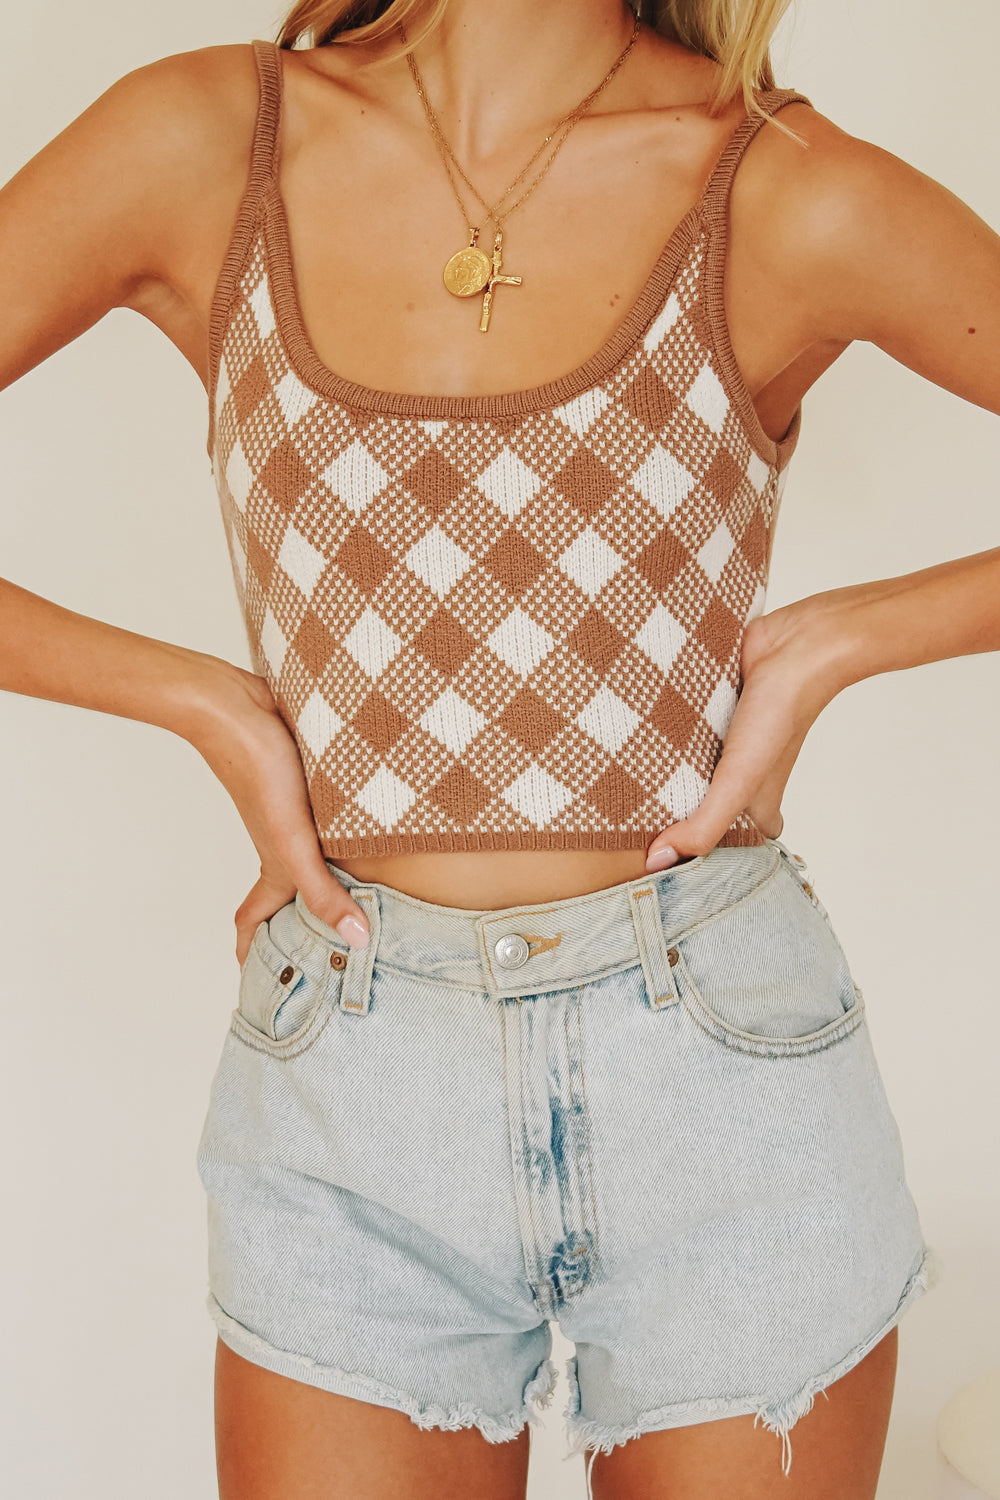 Manhattan Streets Check Knit Cami // Mocha